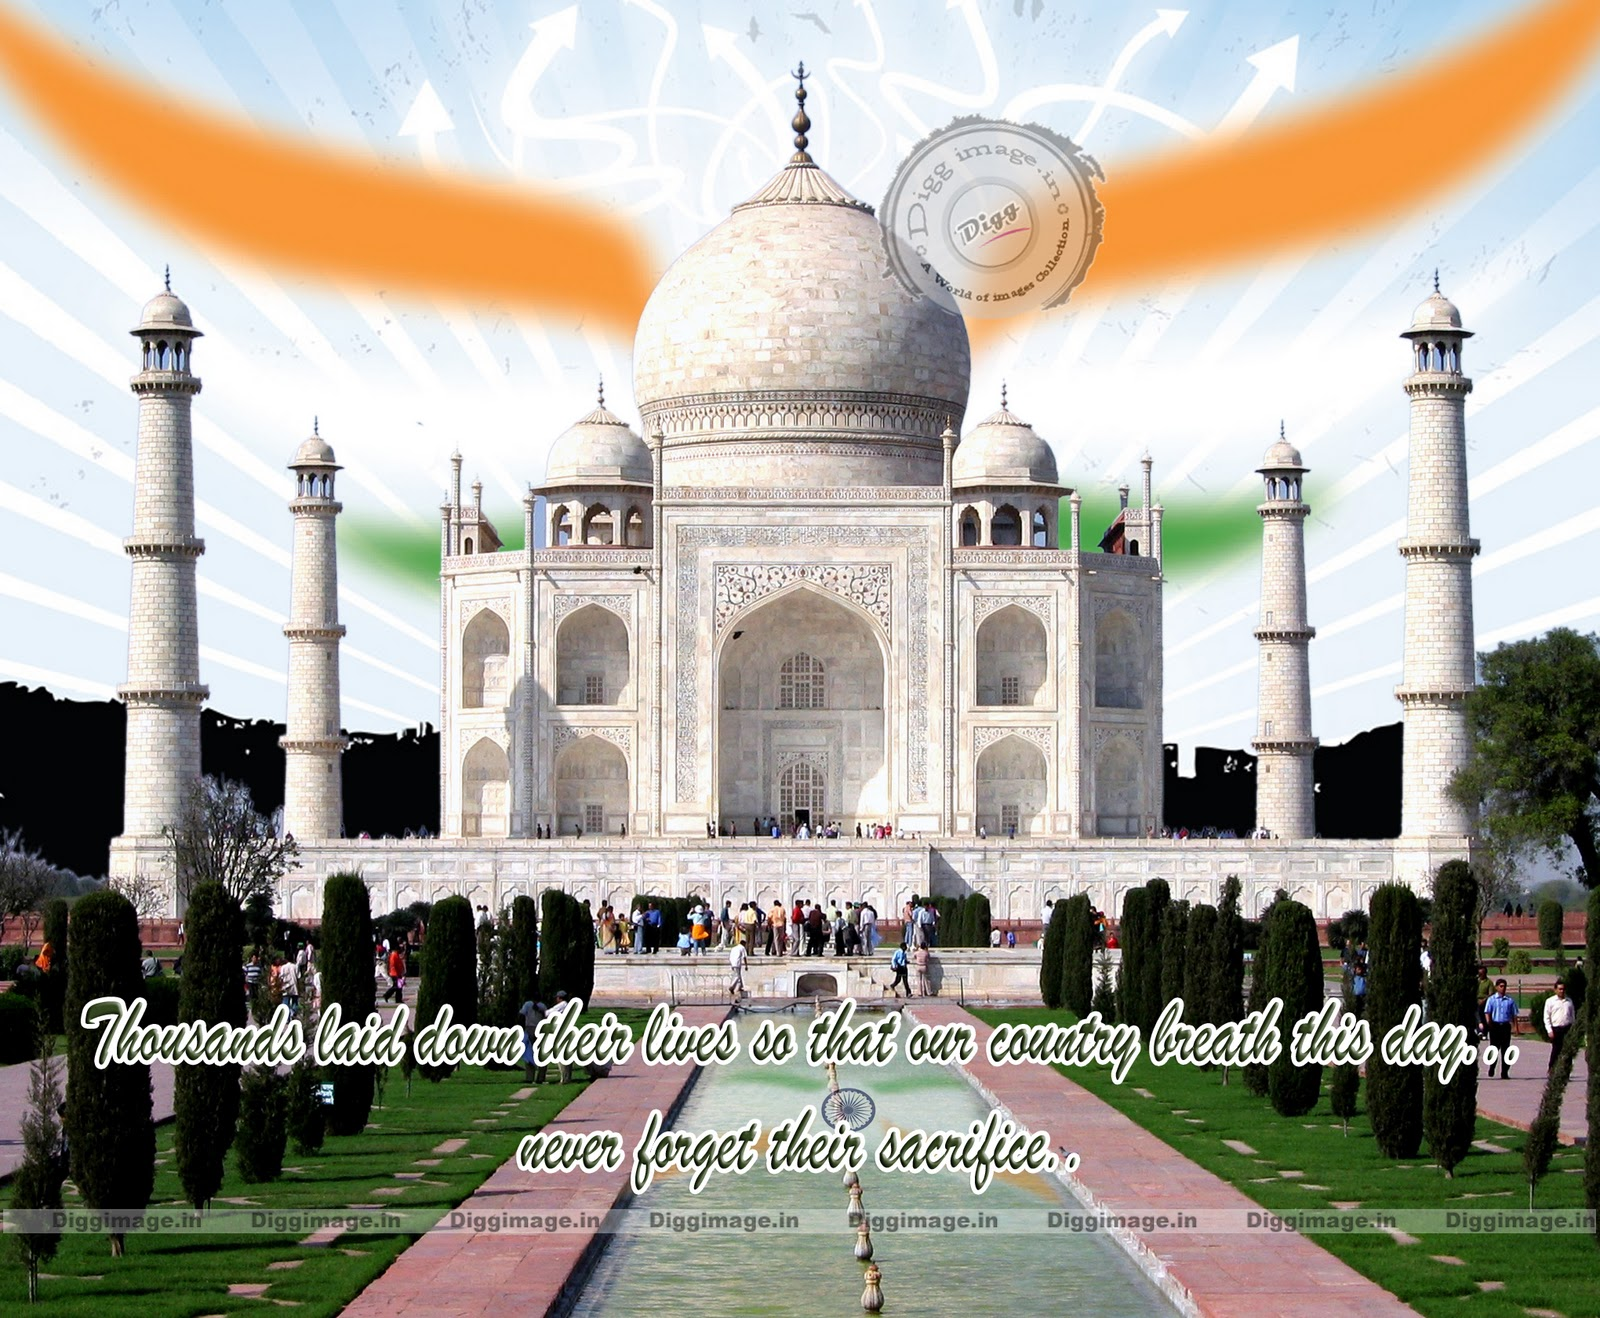 American greetings free wallpaper downloads wallpapersafari - Taj mahal screensaver free download ...